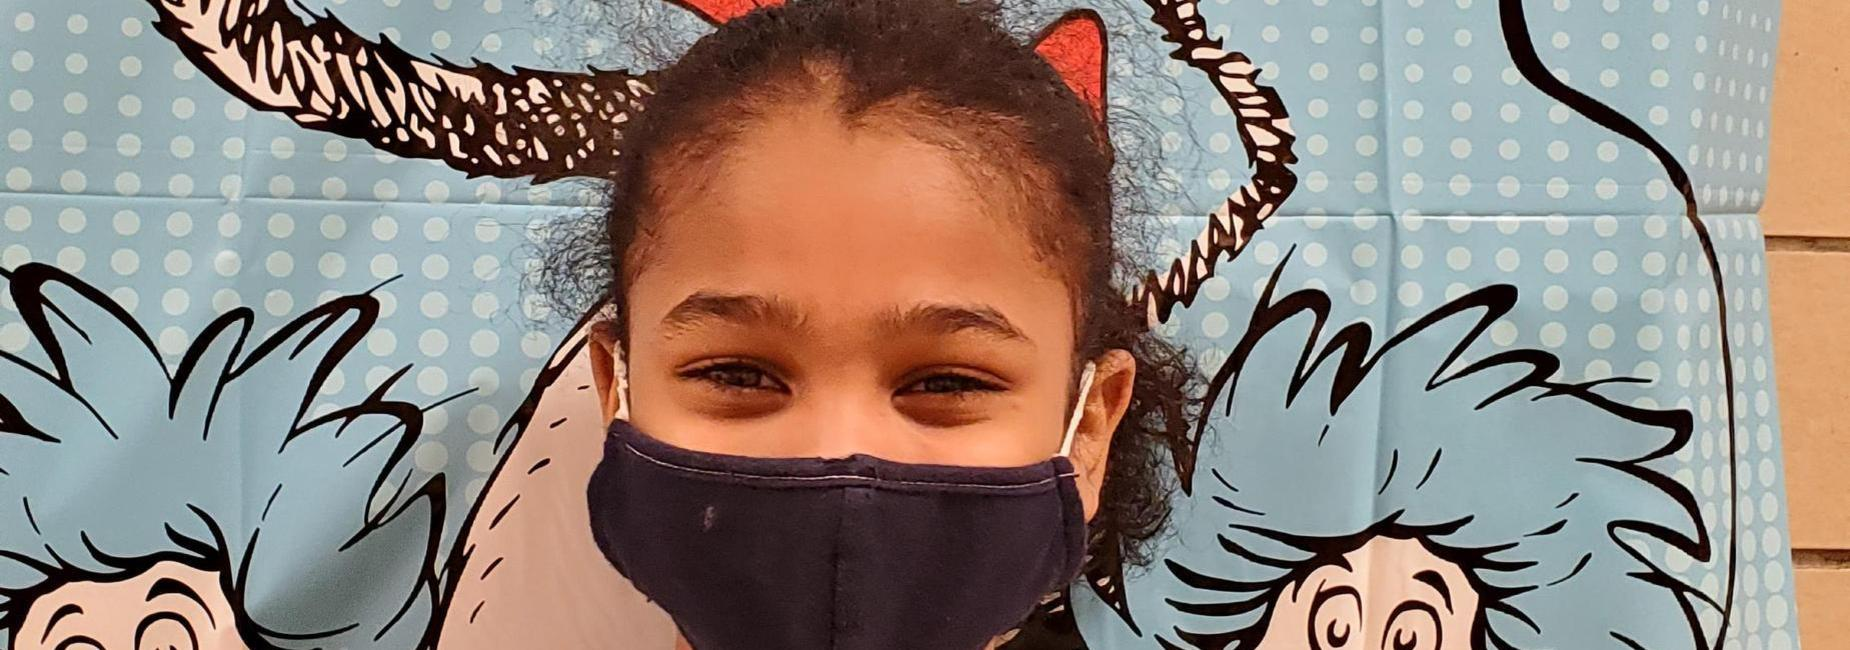 Girl smiling with mask